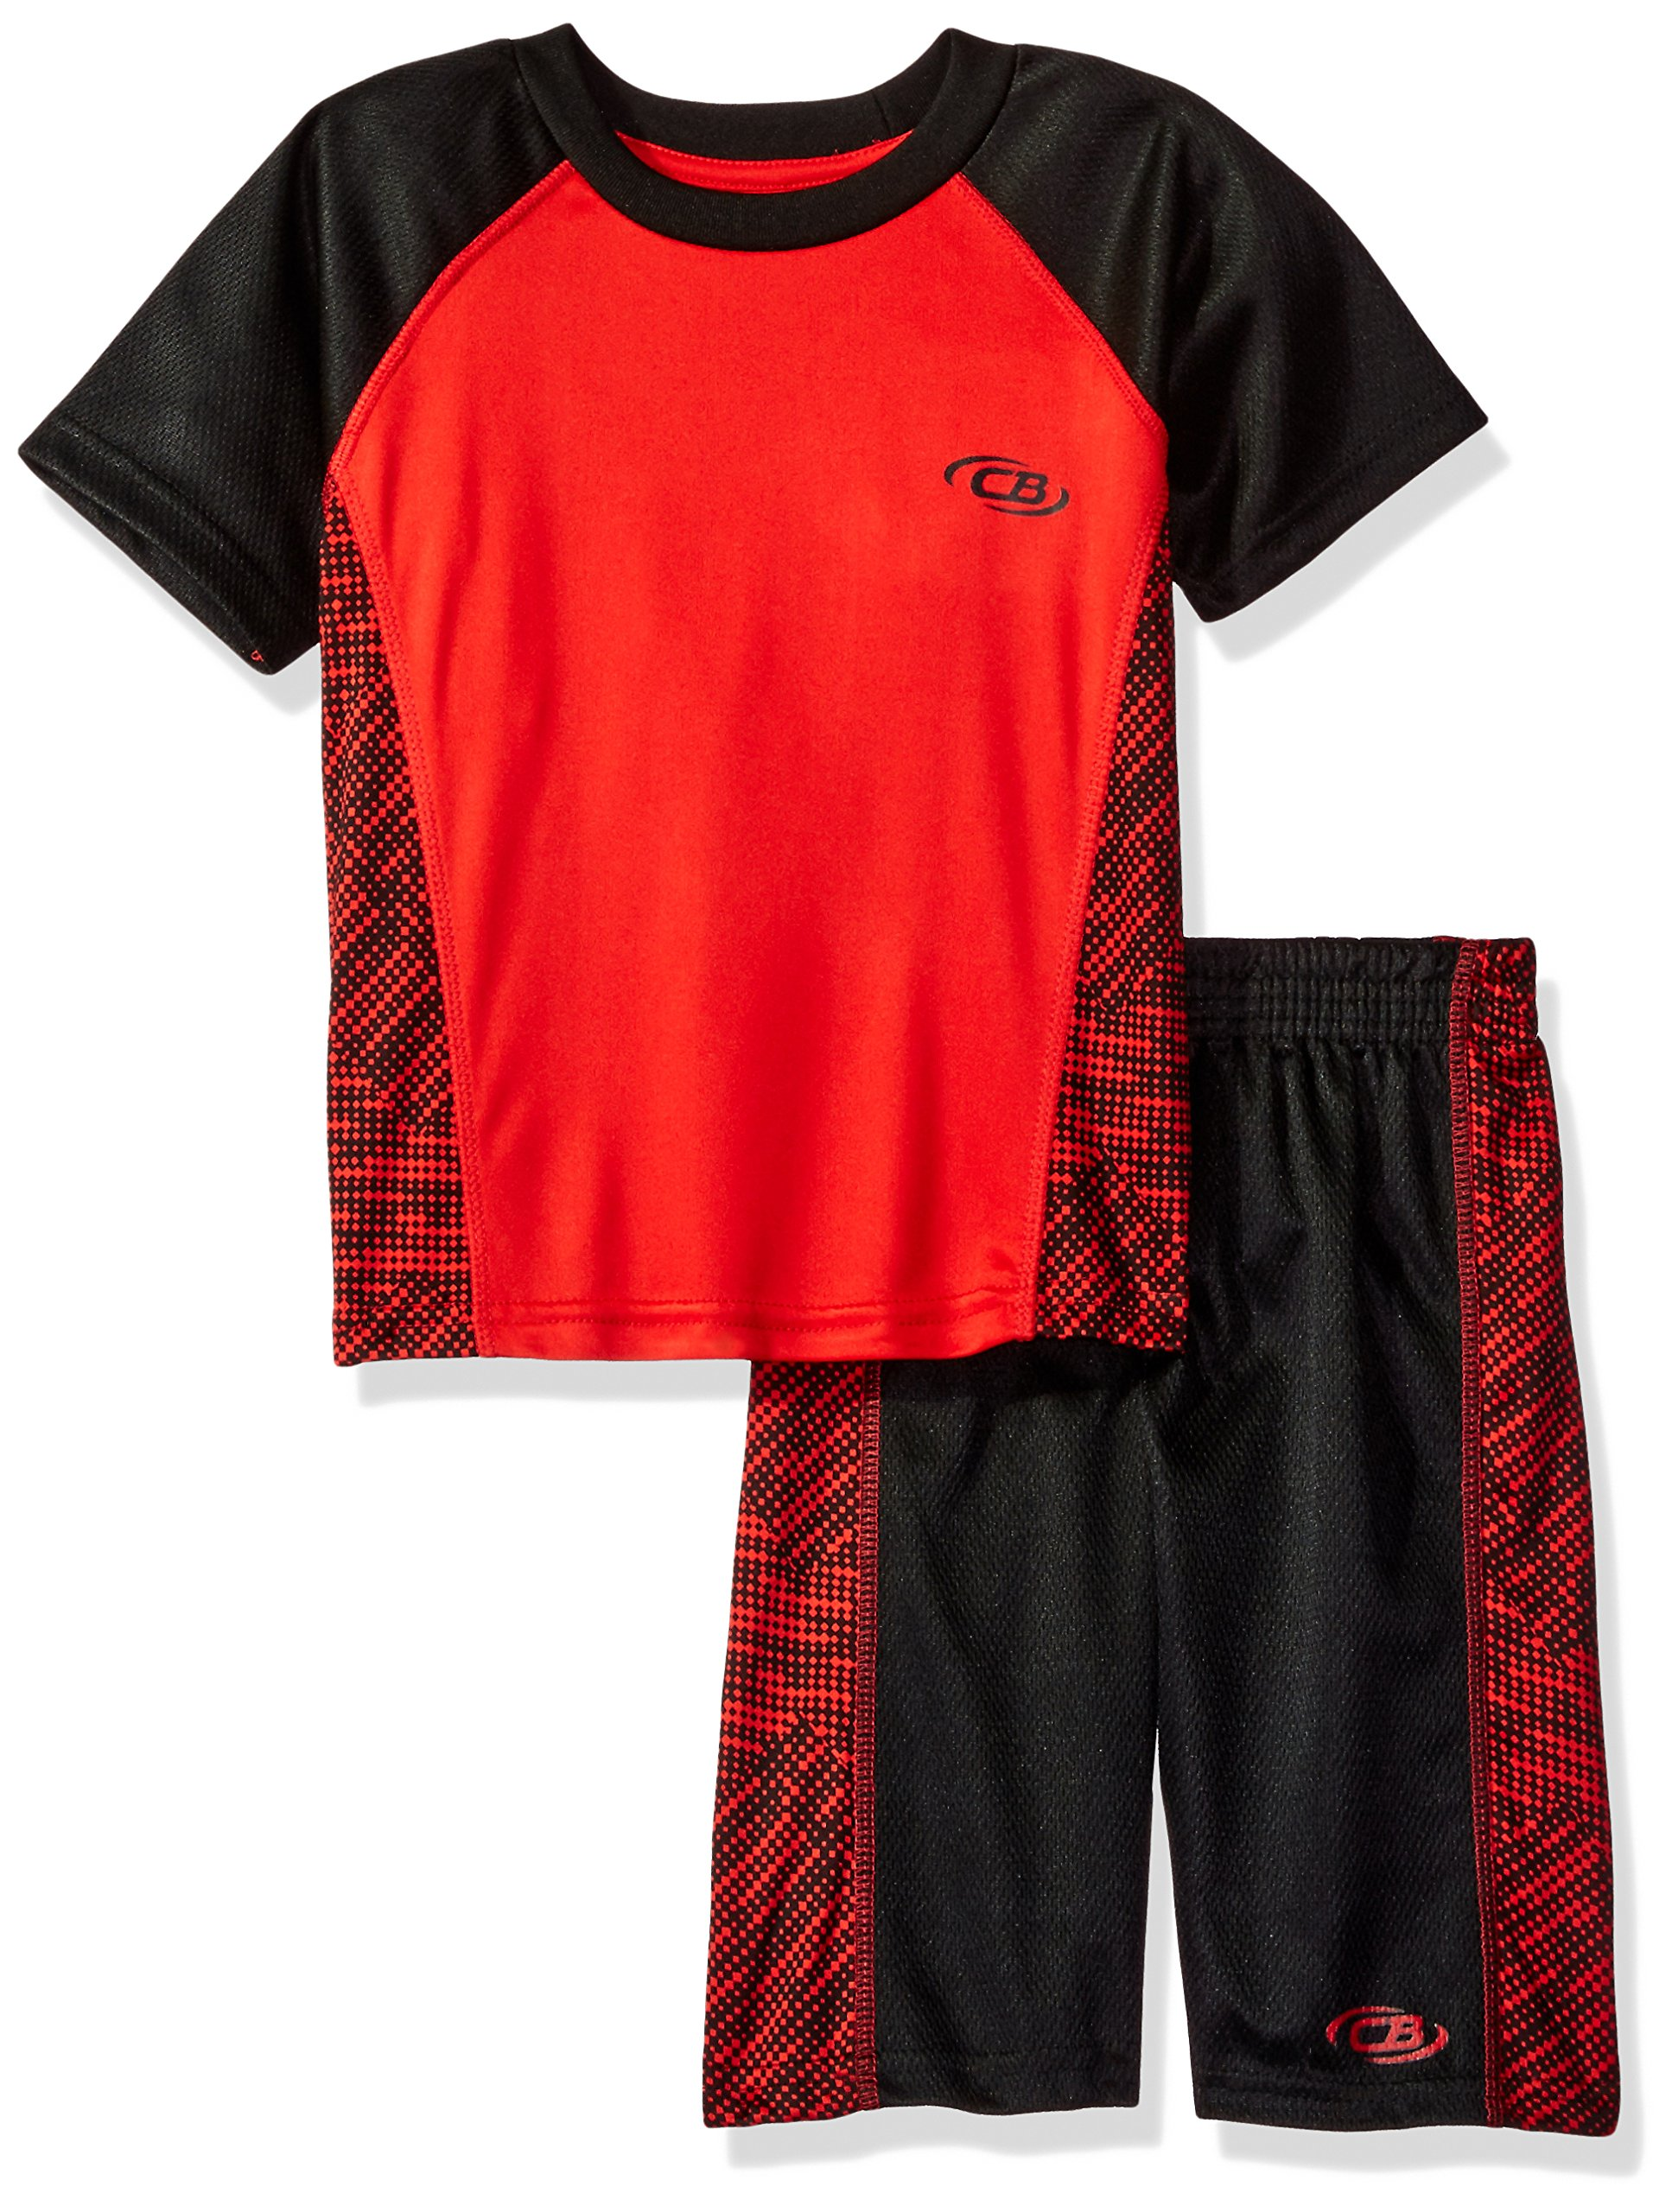 CB Sports Boys' Toddler 2 Piece Performance T-Shirt and Short Set, Si_Black, 2T